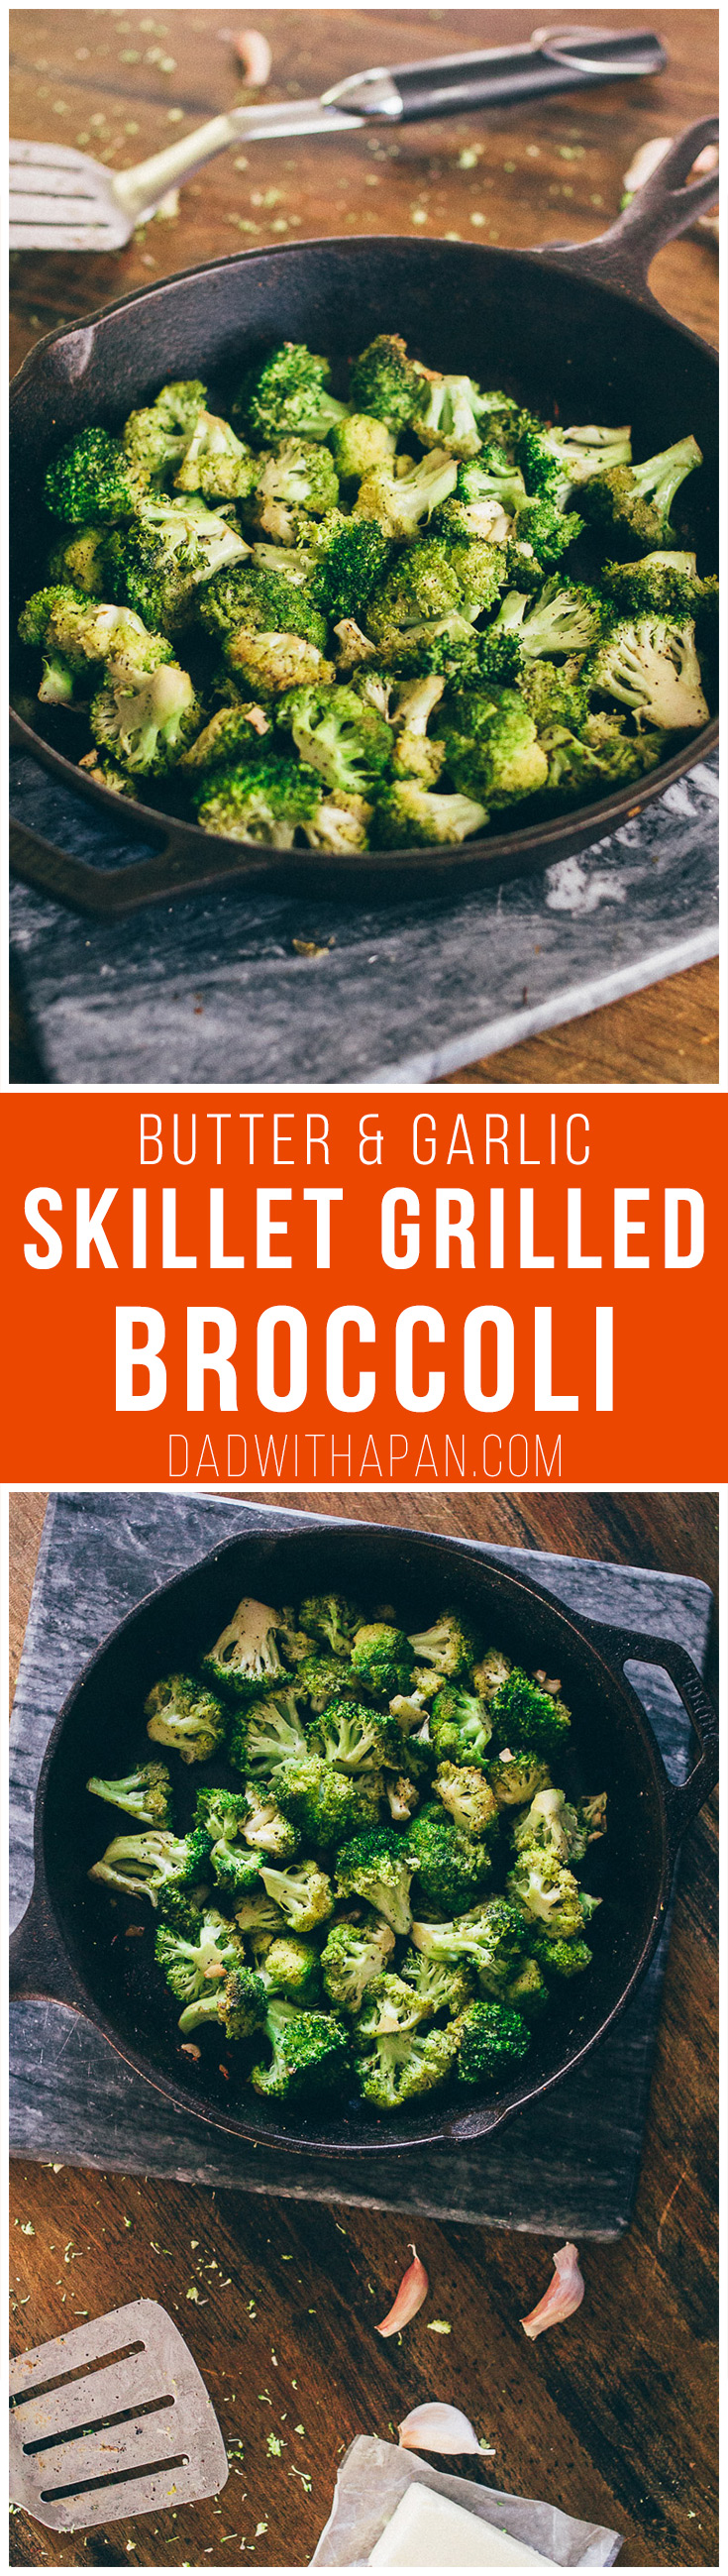 Butter and Garlic Grilled Broccoli #Vegetarian #Grilled